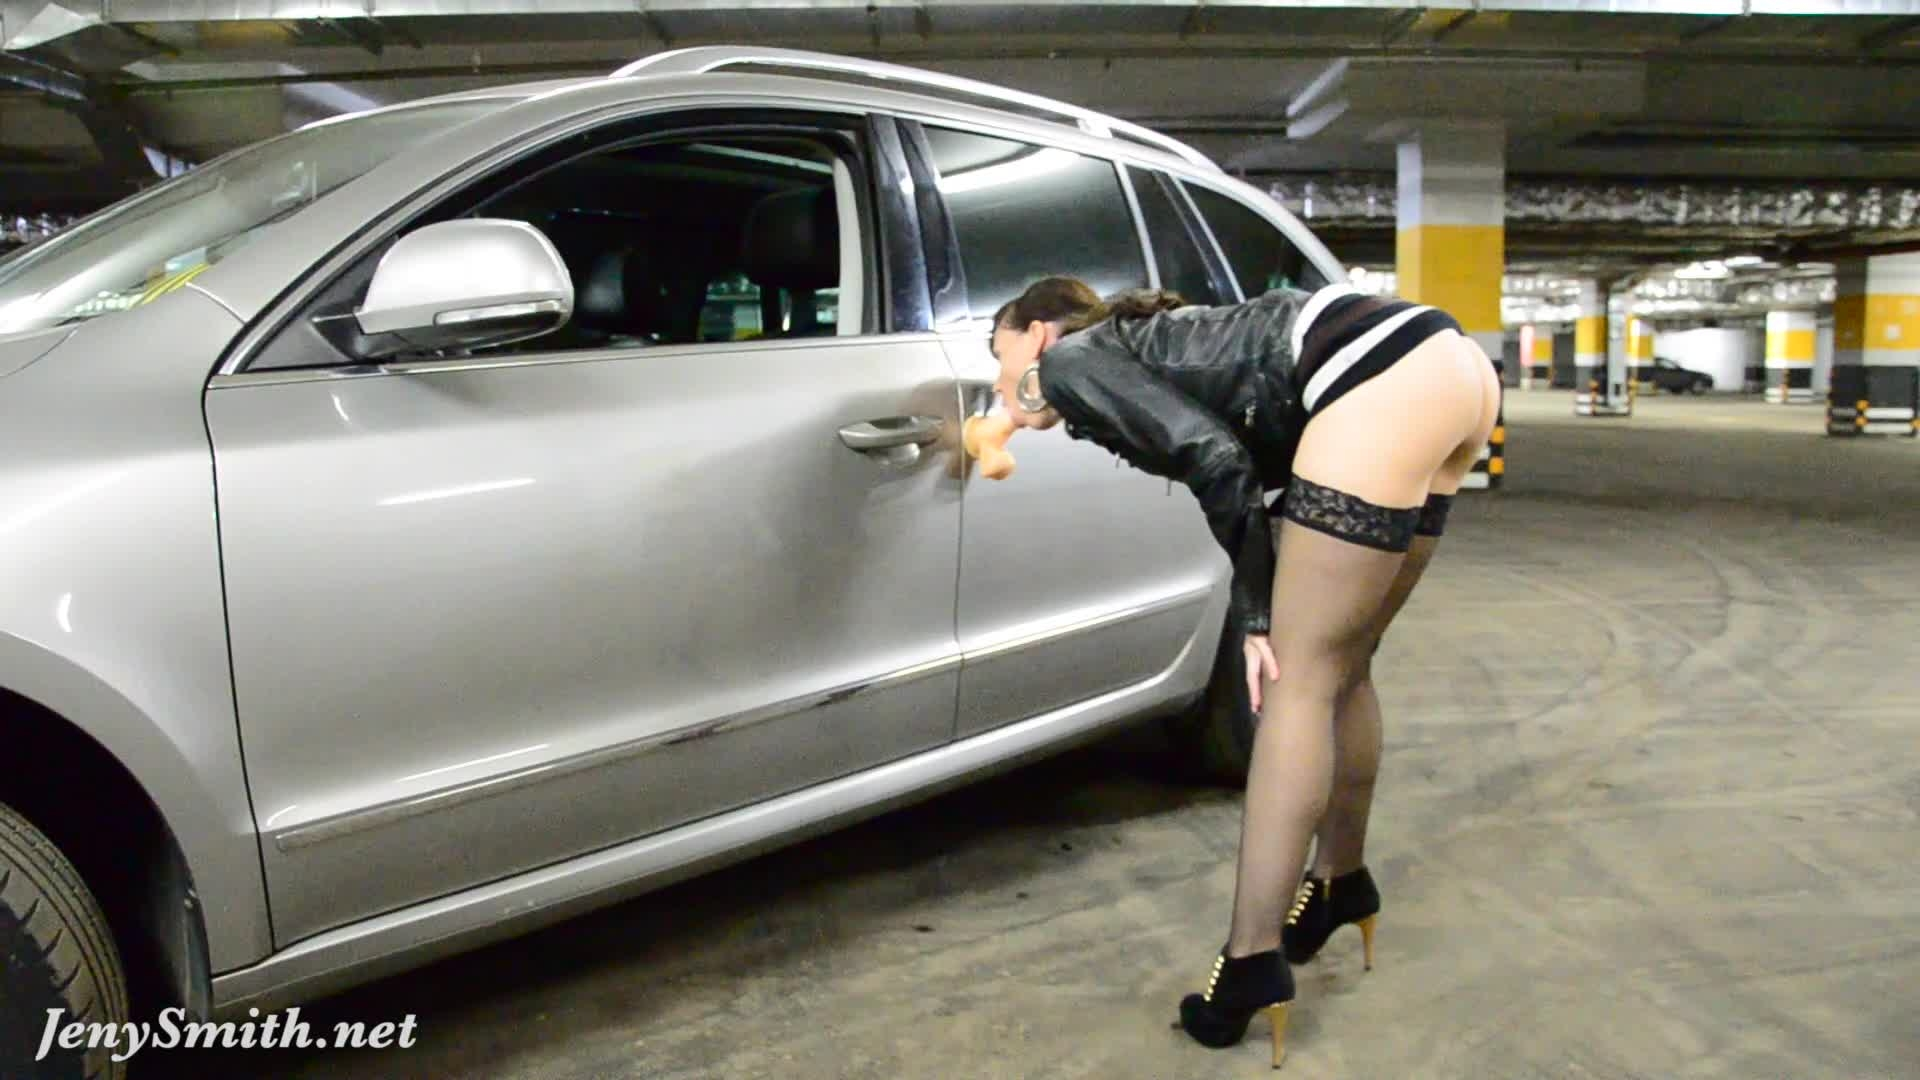 image Jeny smith oiling her naked body in a public parking